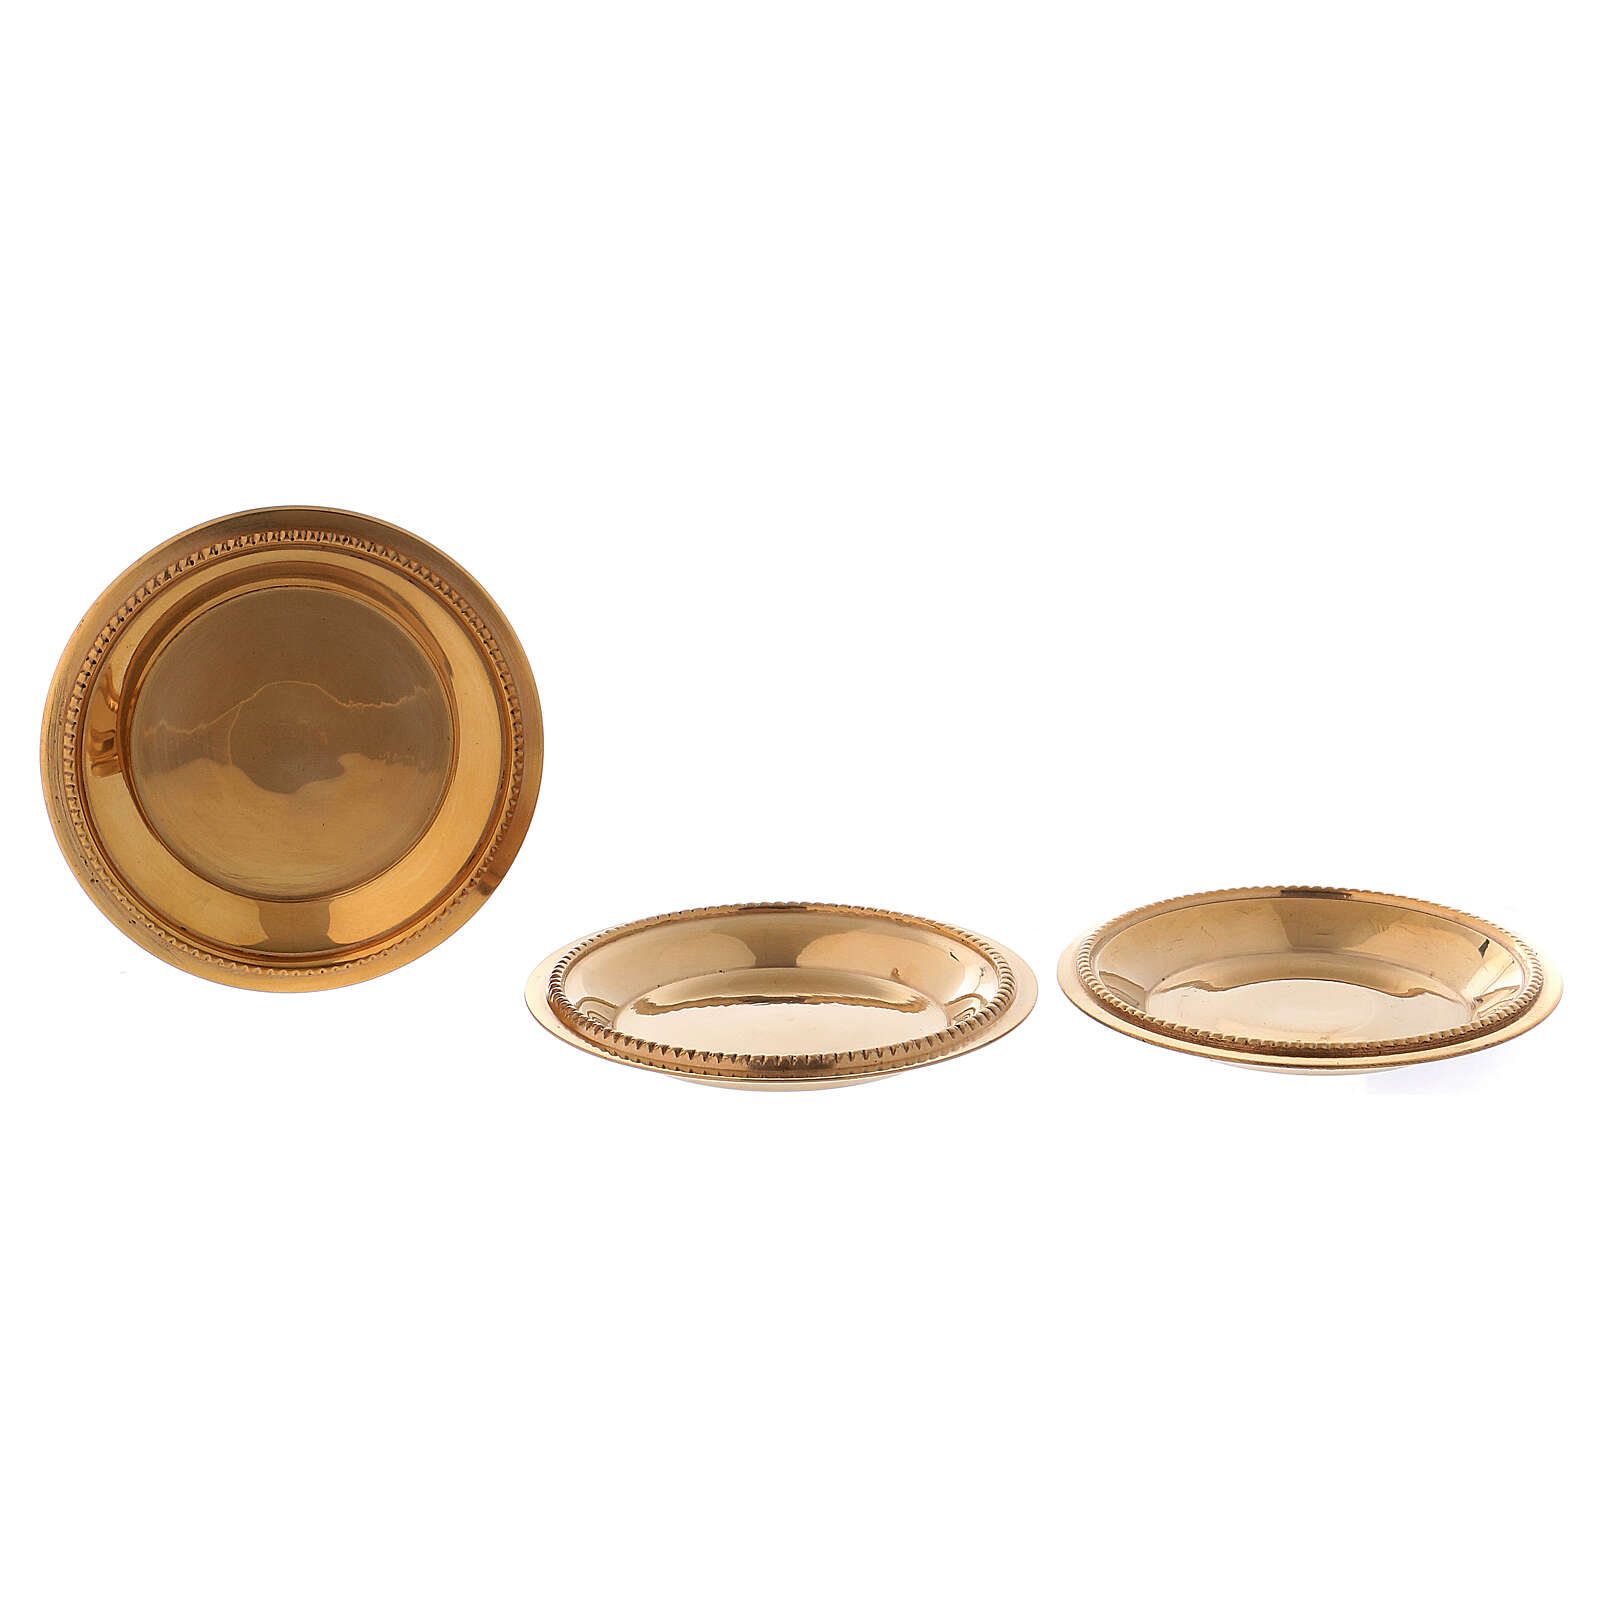 Kit of 3 candle holder plates gold plated brass 1 3/4 in 3